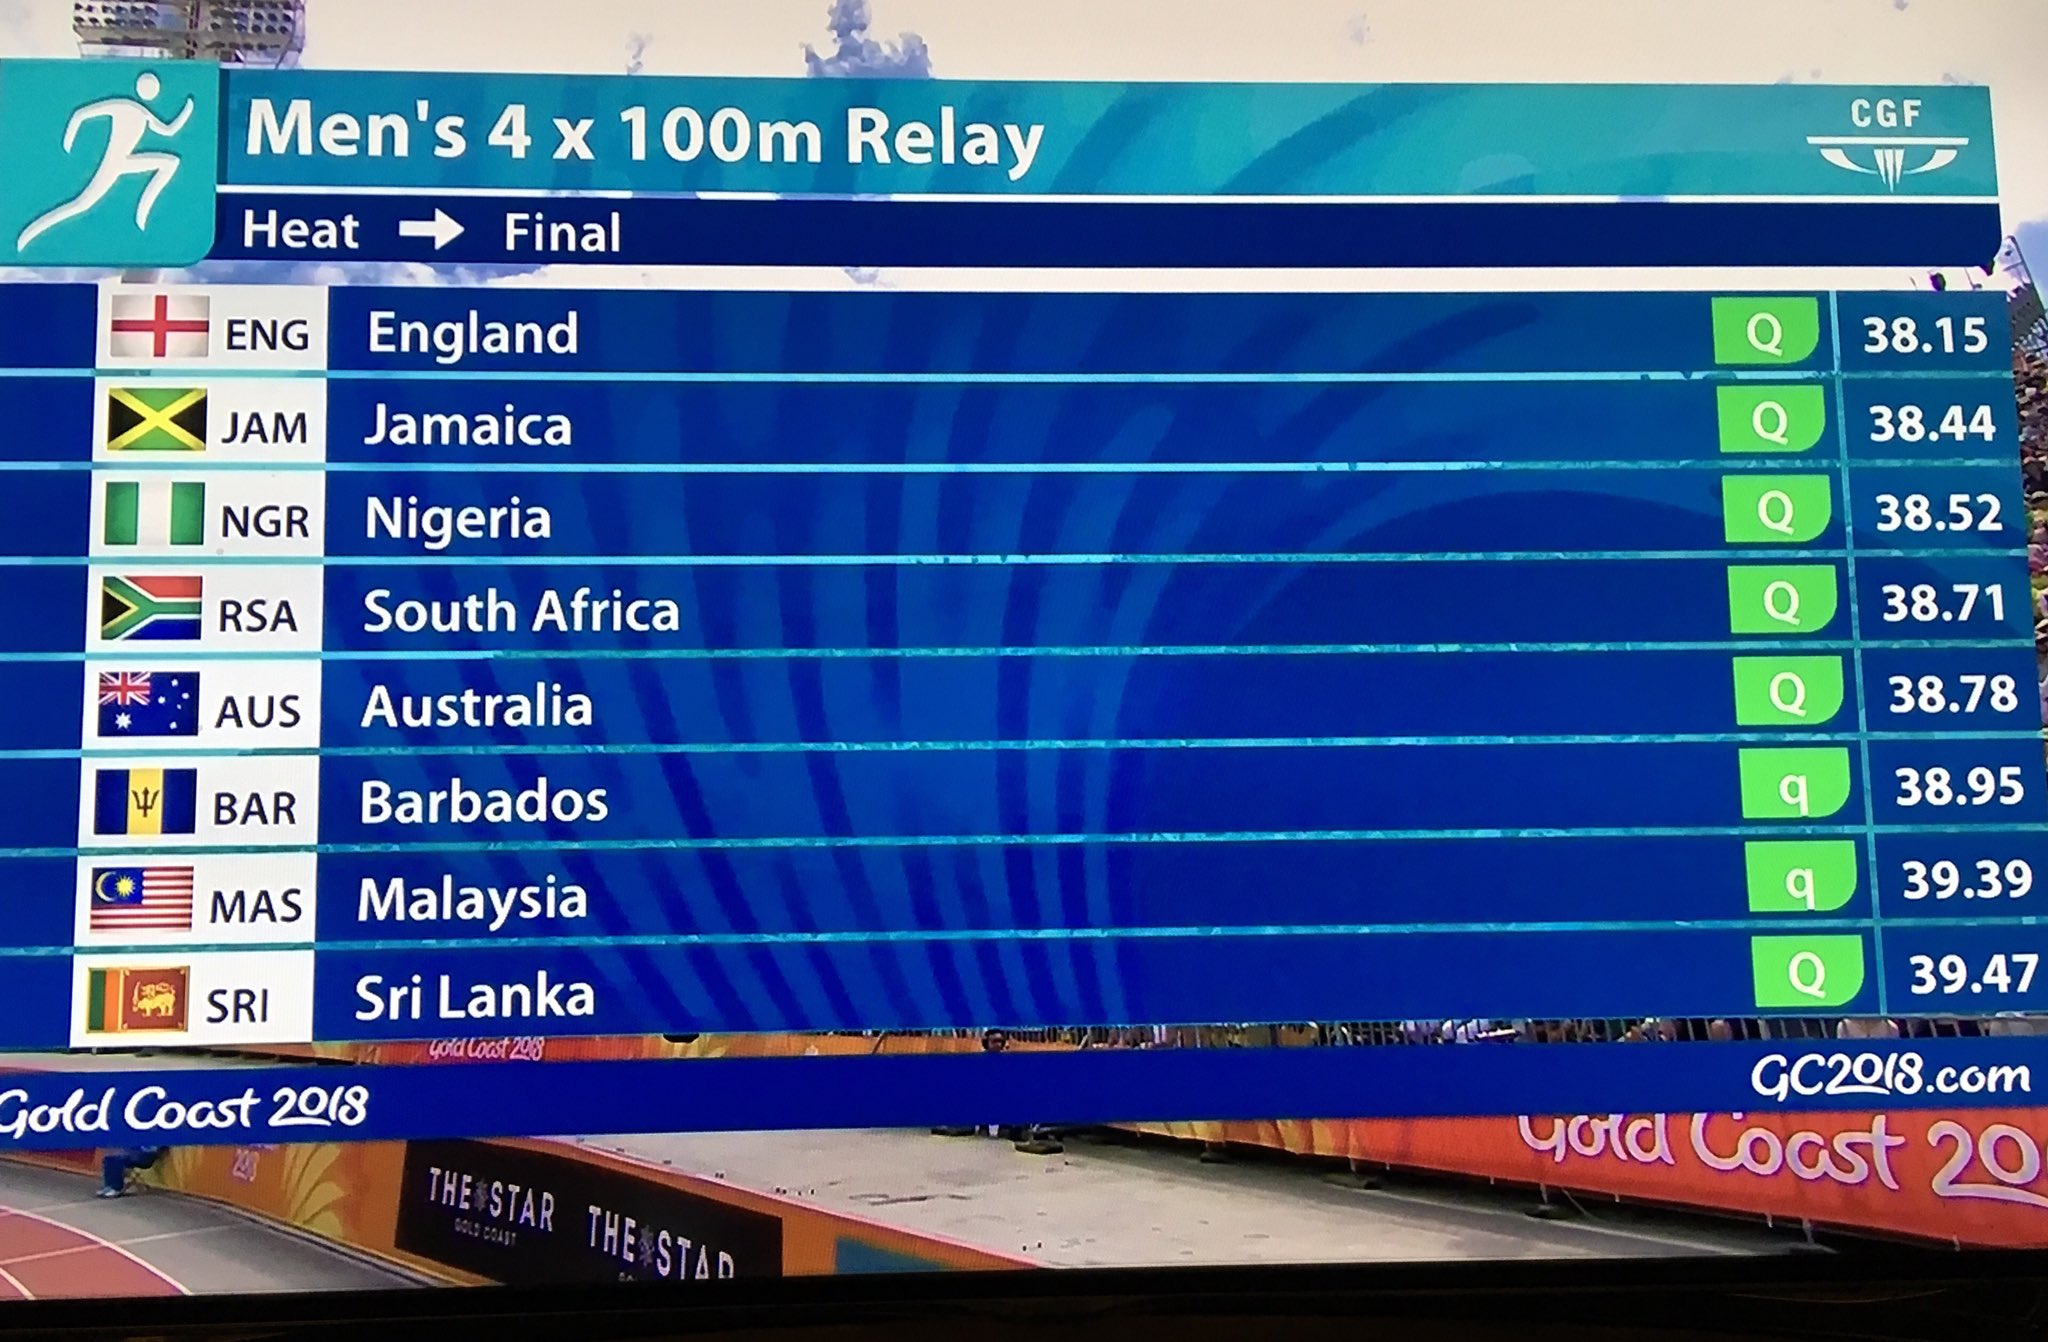 #Nigeria 🇳🇬 and #SouthAfrica 🇿🇦 ensures qualification for tomorrow's men's 4x100m Relay Final.  #GC2018 #GC2018Athletics #AthleticsAfrica https://t.co/lRoNGEKPUT